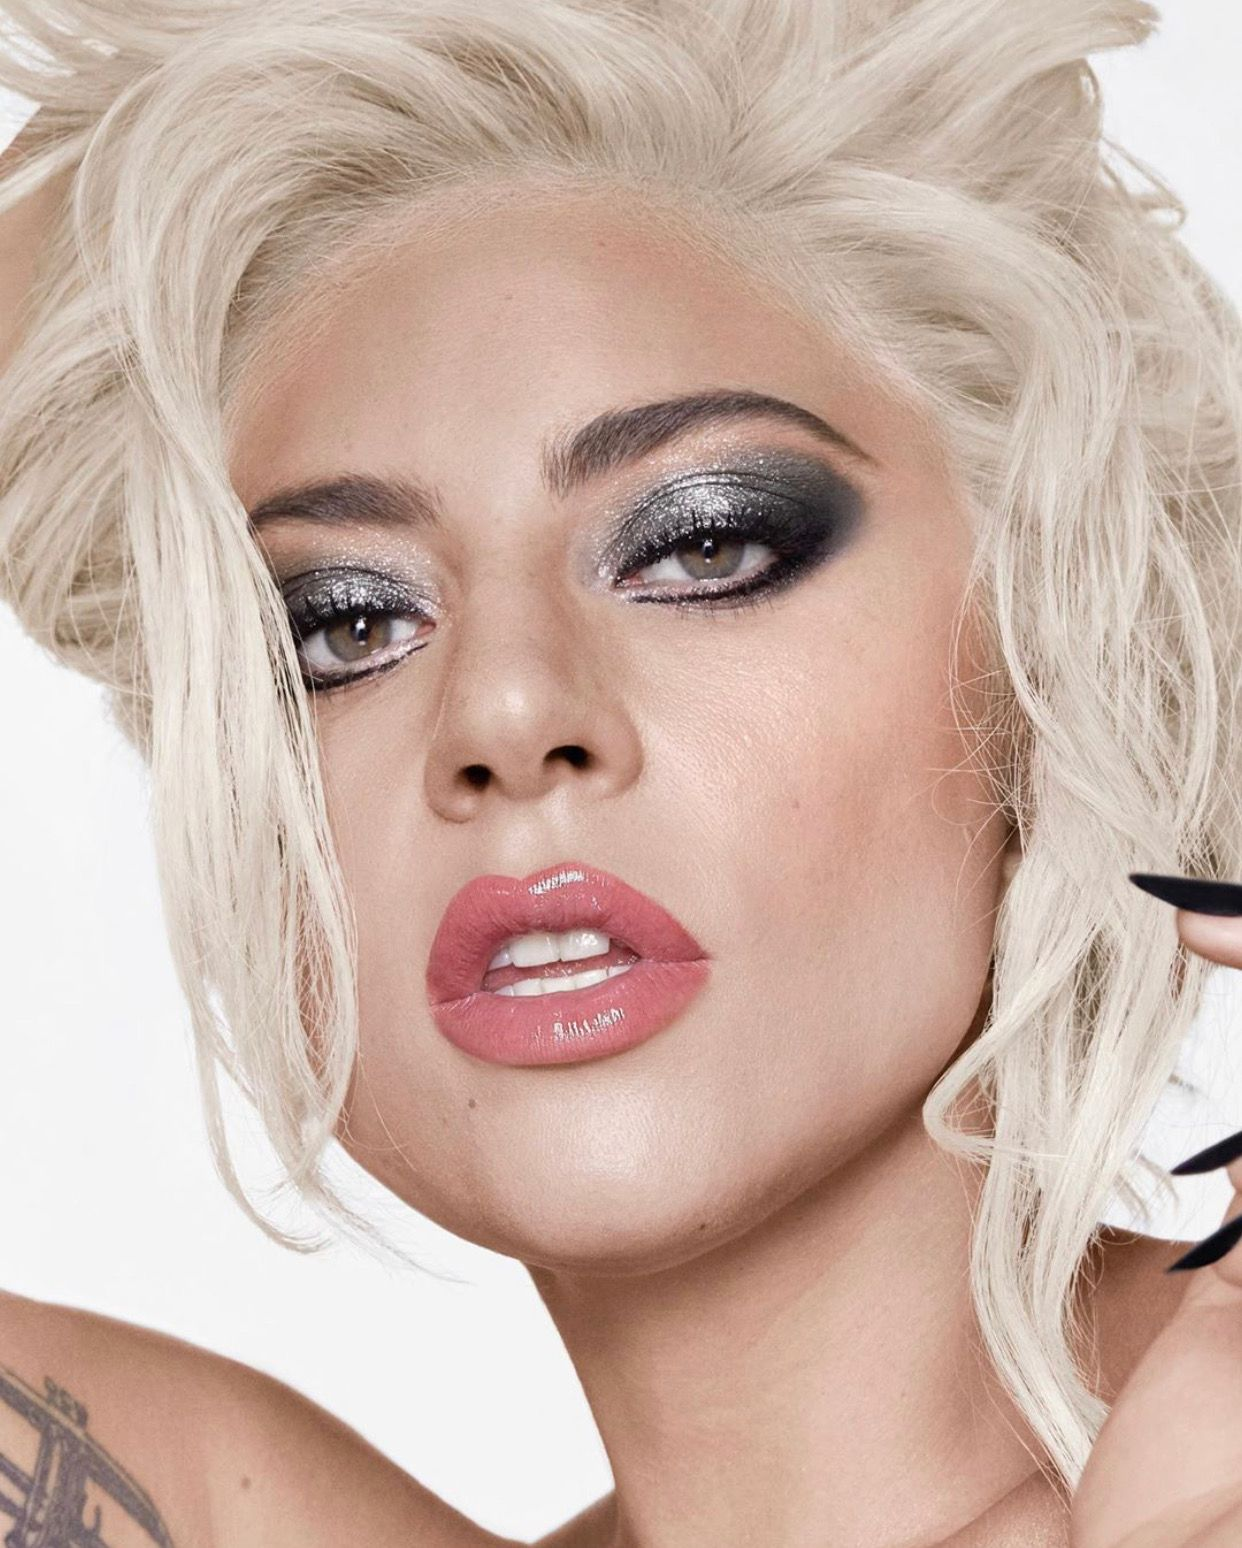 Image by 🌸 Stacie 🌸 on Music & Favorite People Lady gaga